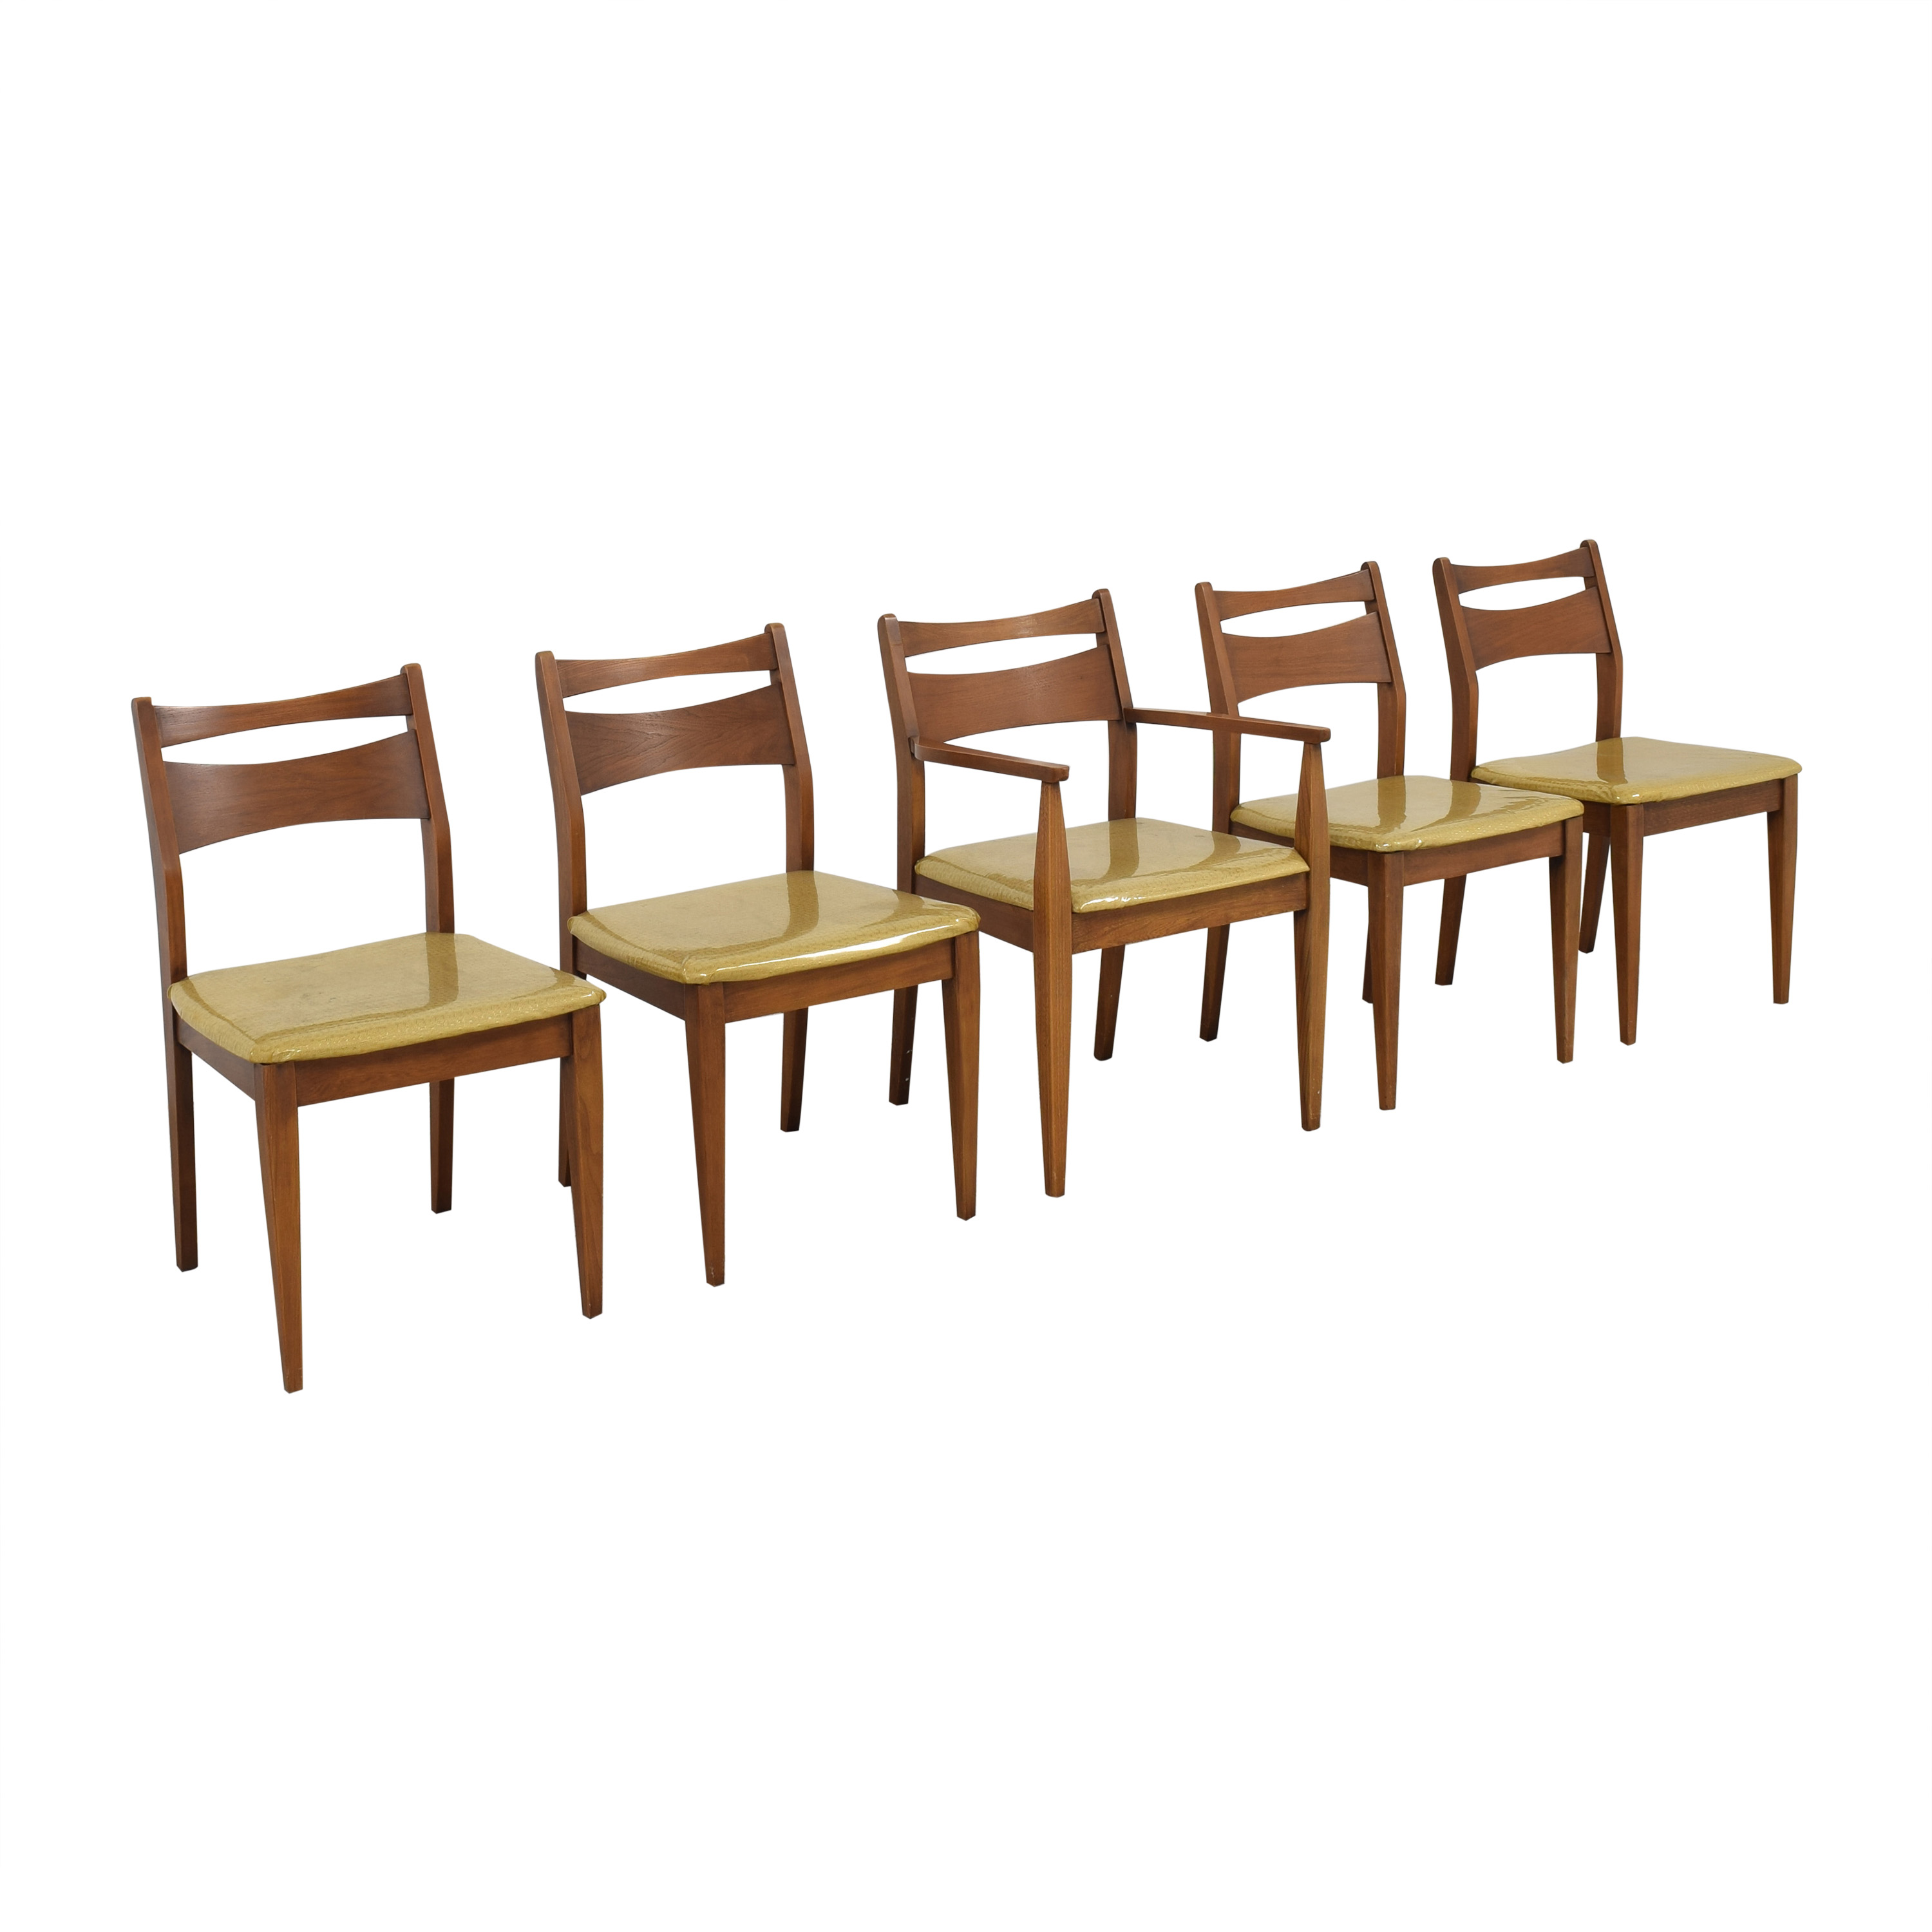 65 Off Vintage Mid Century Modern Dining Chairs Chairs